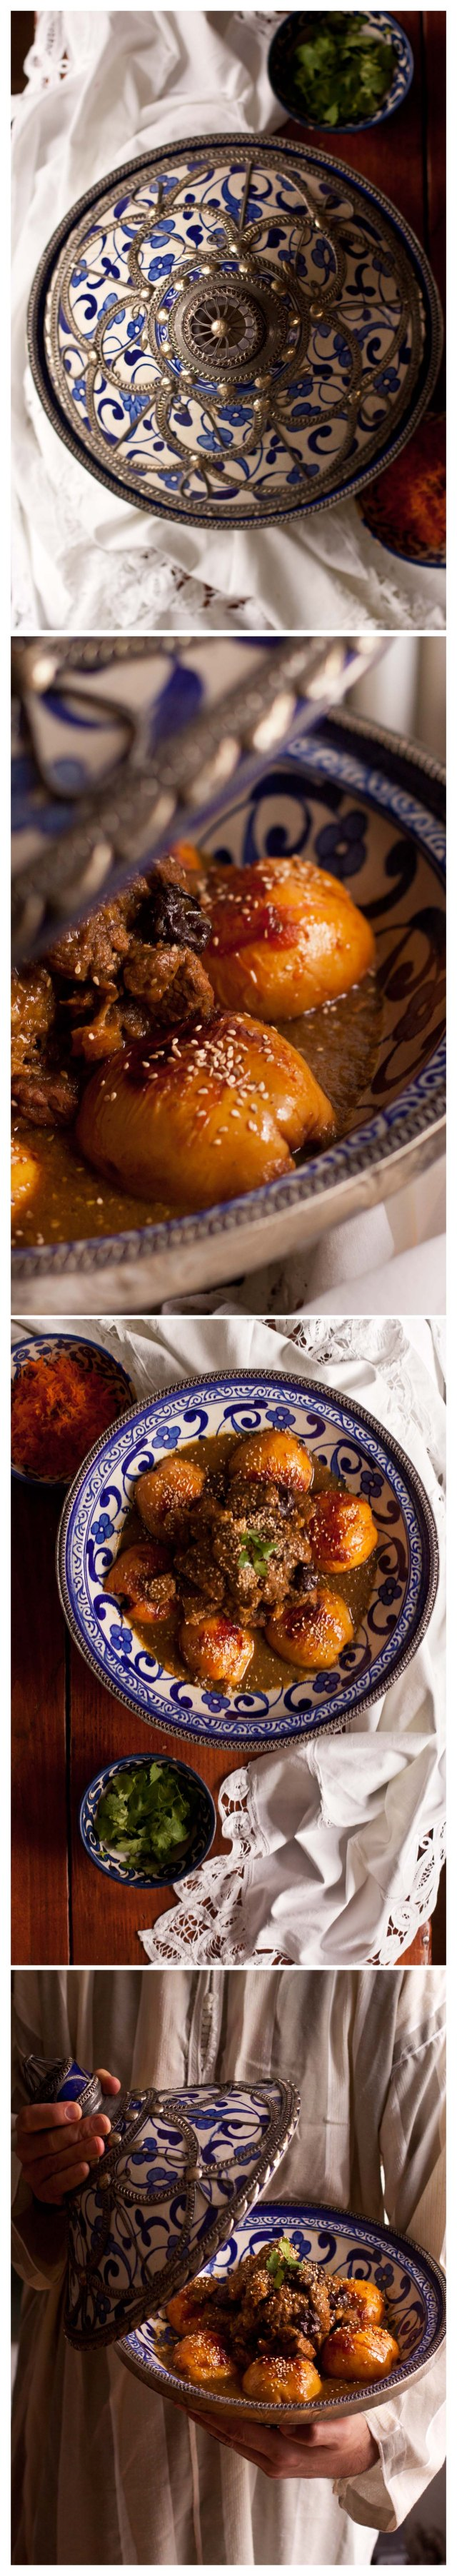 Tagine aux coings 2